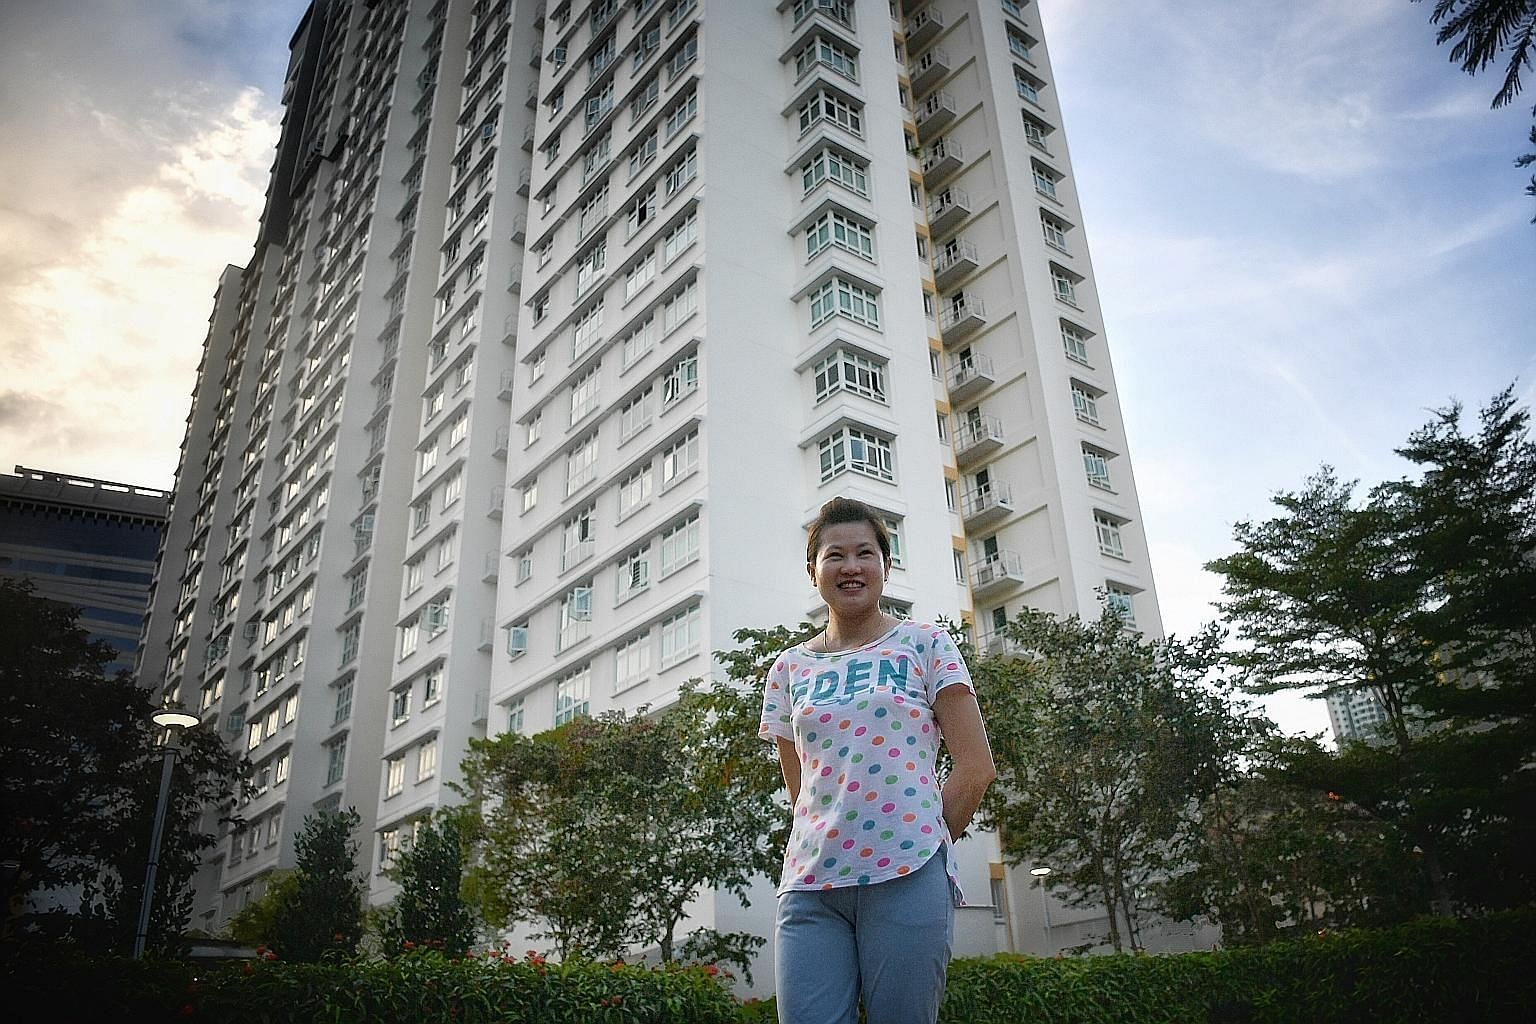 Property agent Casslyn Lim sold a four-room flat and a five-room unit at a cluster of HDB blocks in Boon Tiong Road (left), in the Tiong Bahru area, for over a million dollars each last year. While noting that million-dollar flats are not the norm, o